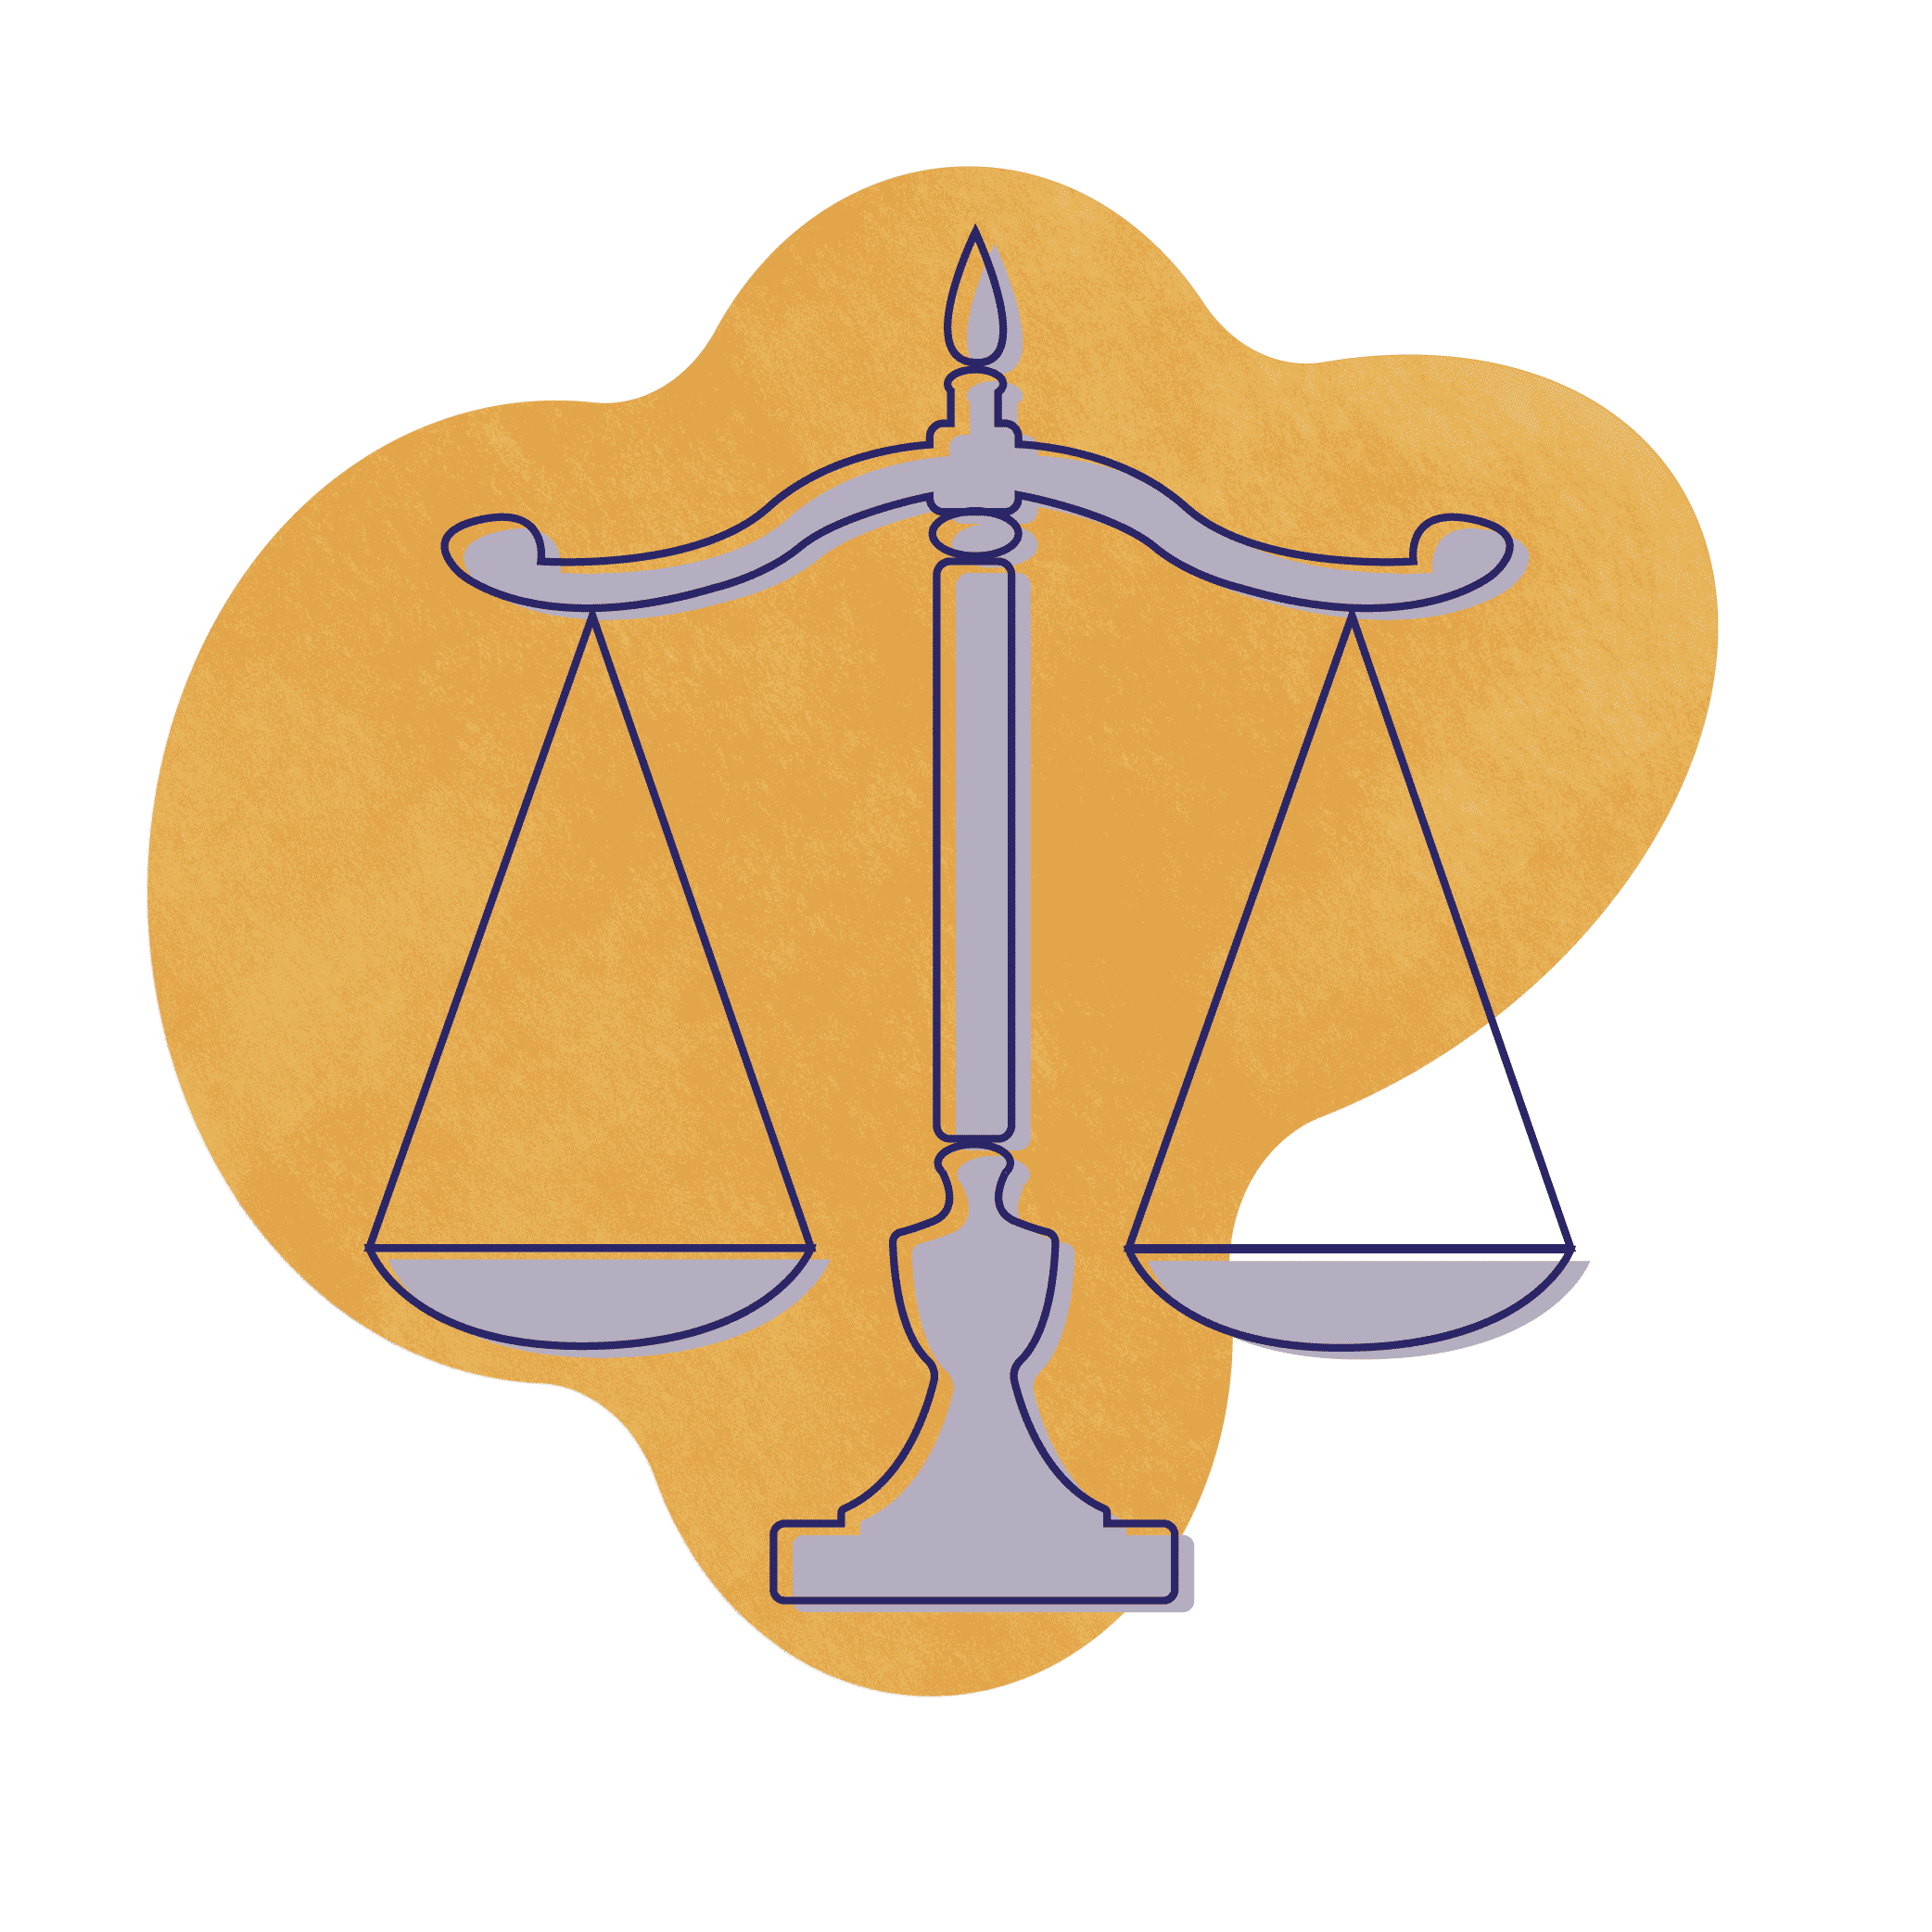 An illustration of lawyers showing a purple justice scale over a gold textured shape.